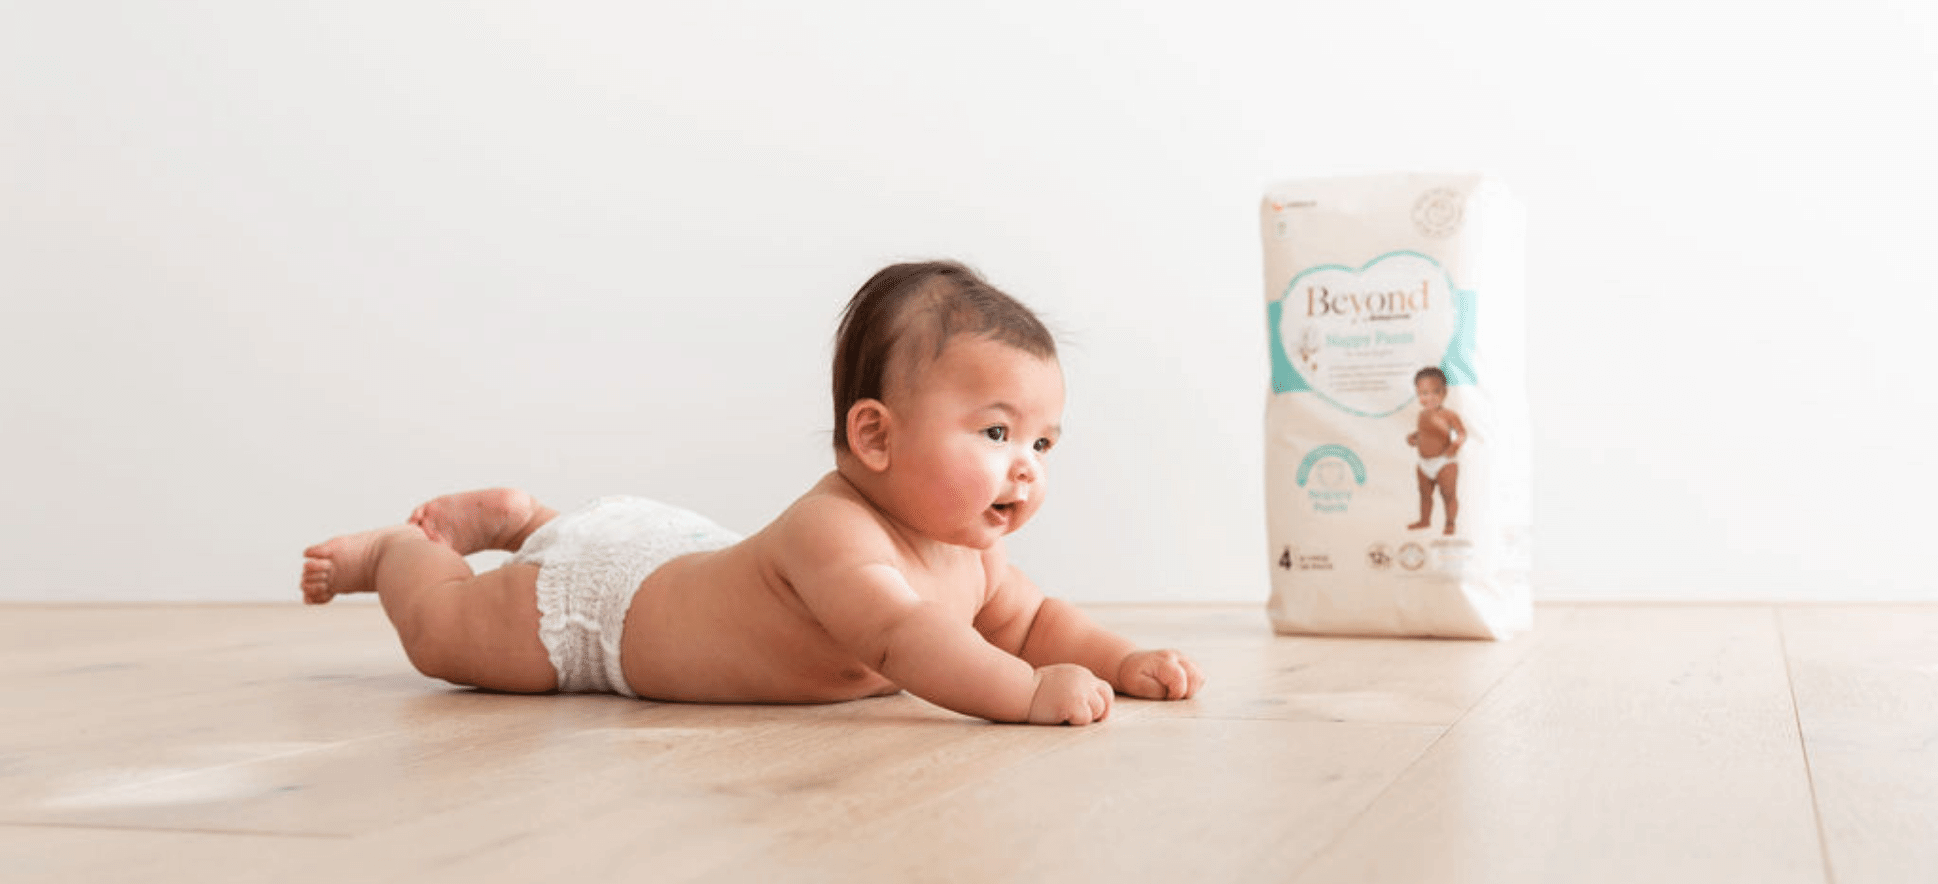 Beyond website Product Page Header - Beyond by BabyLove Natural Mooney